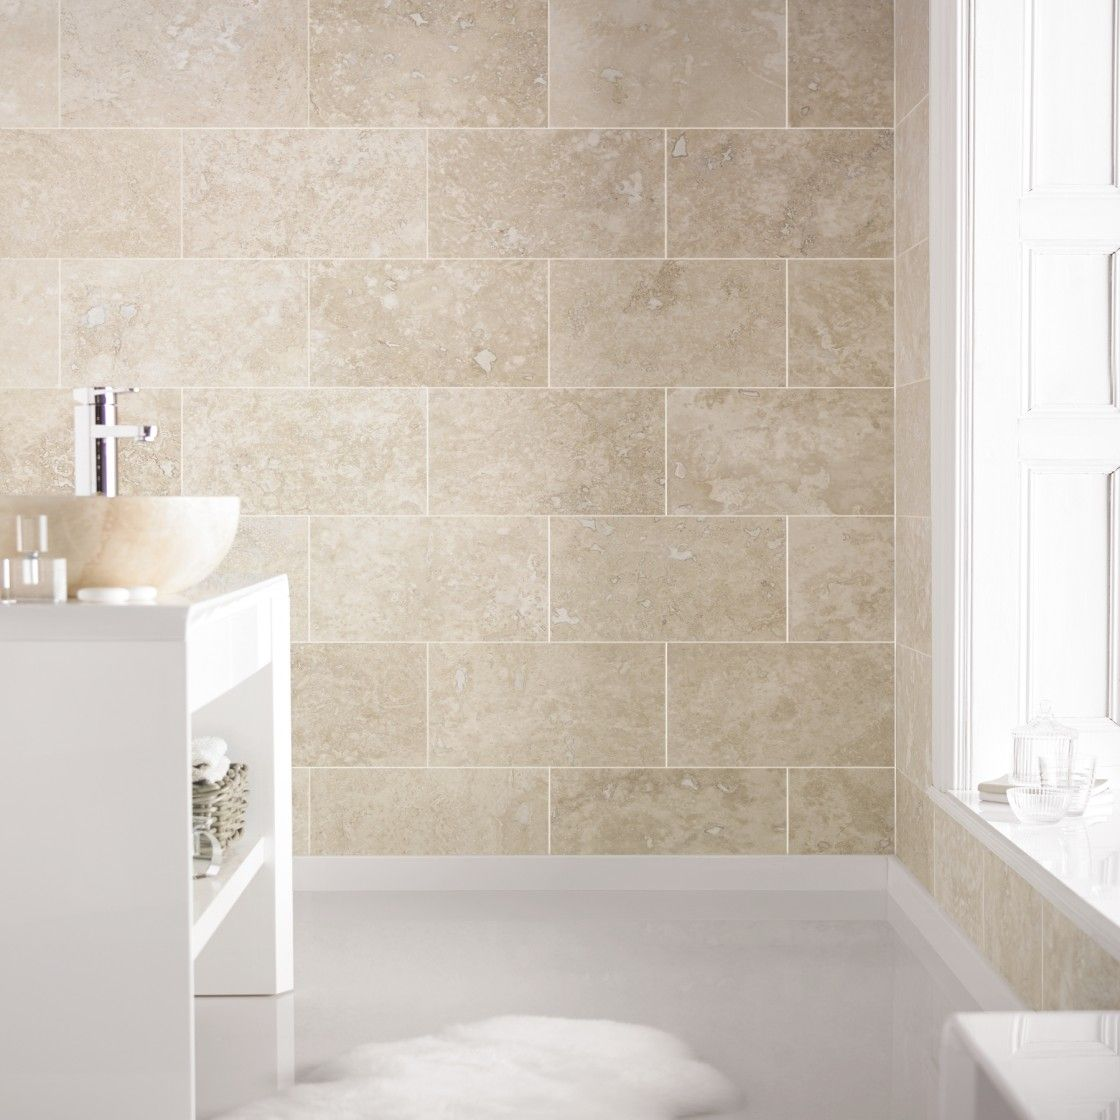 Is Travertine Tile Durable | Tile Design Ideas